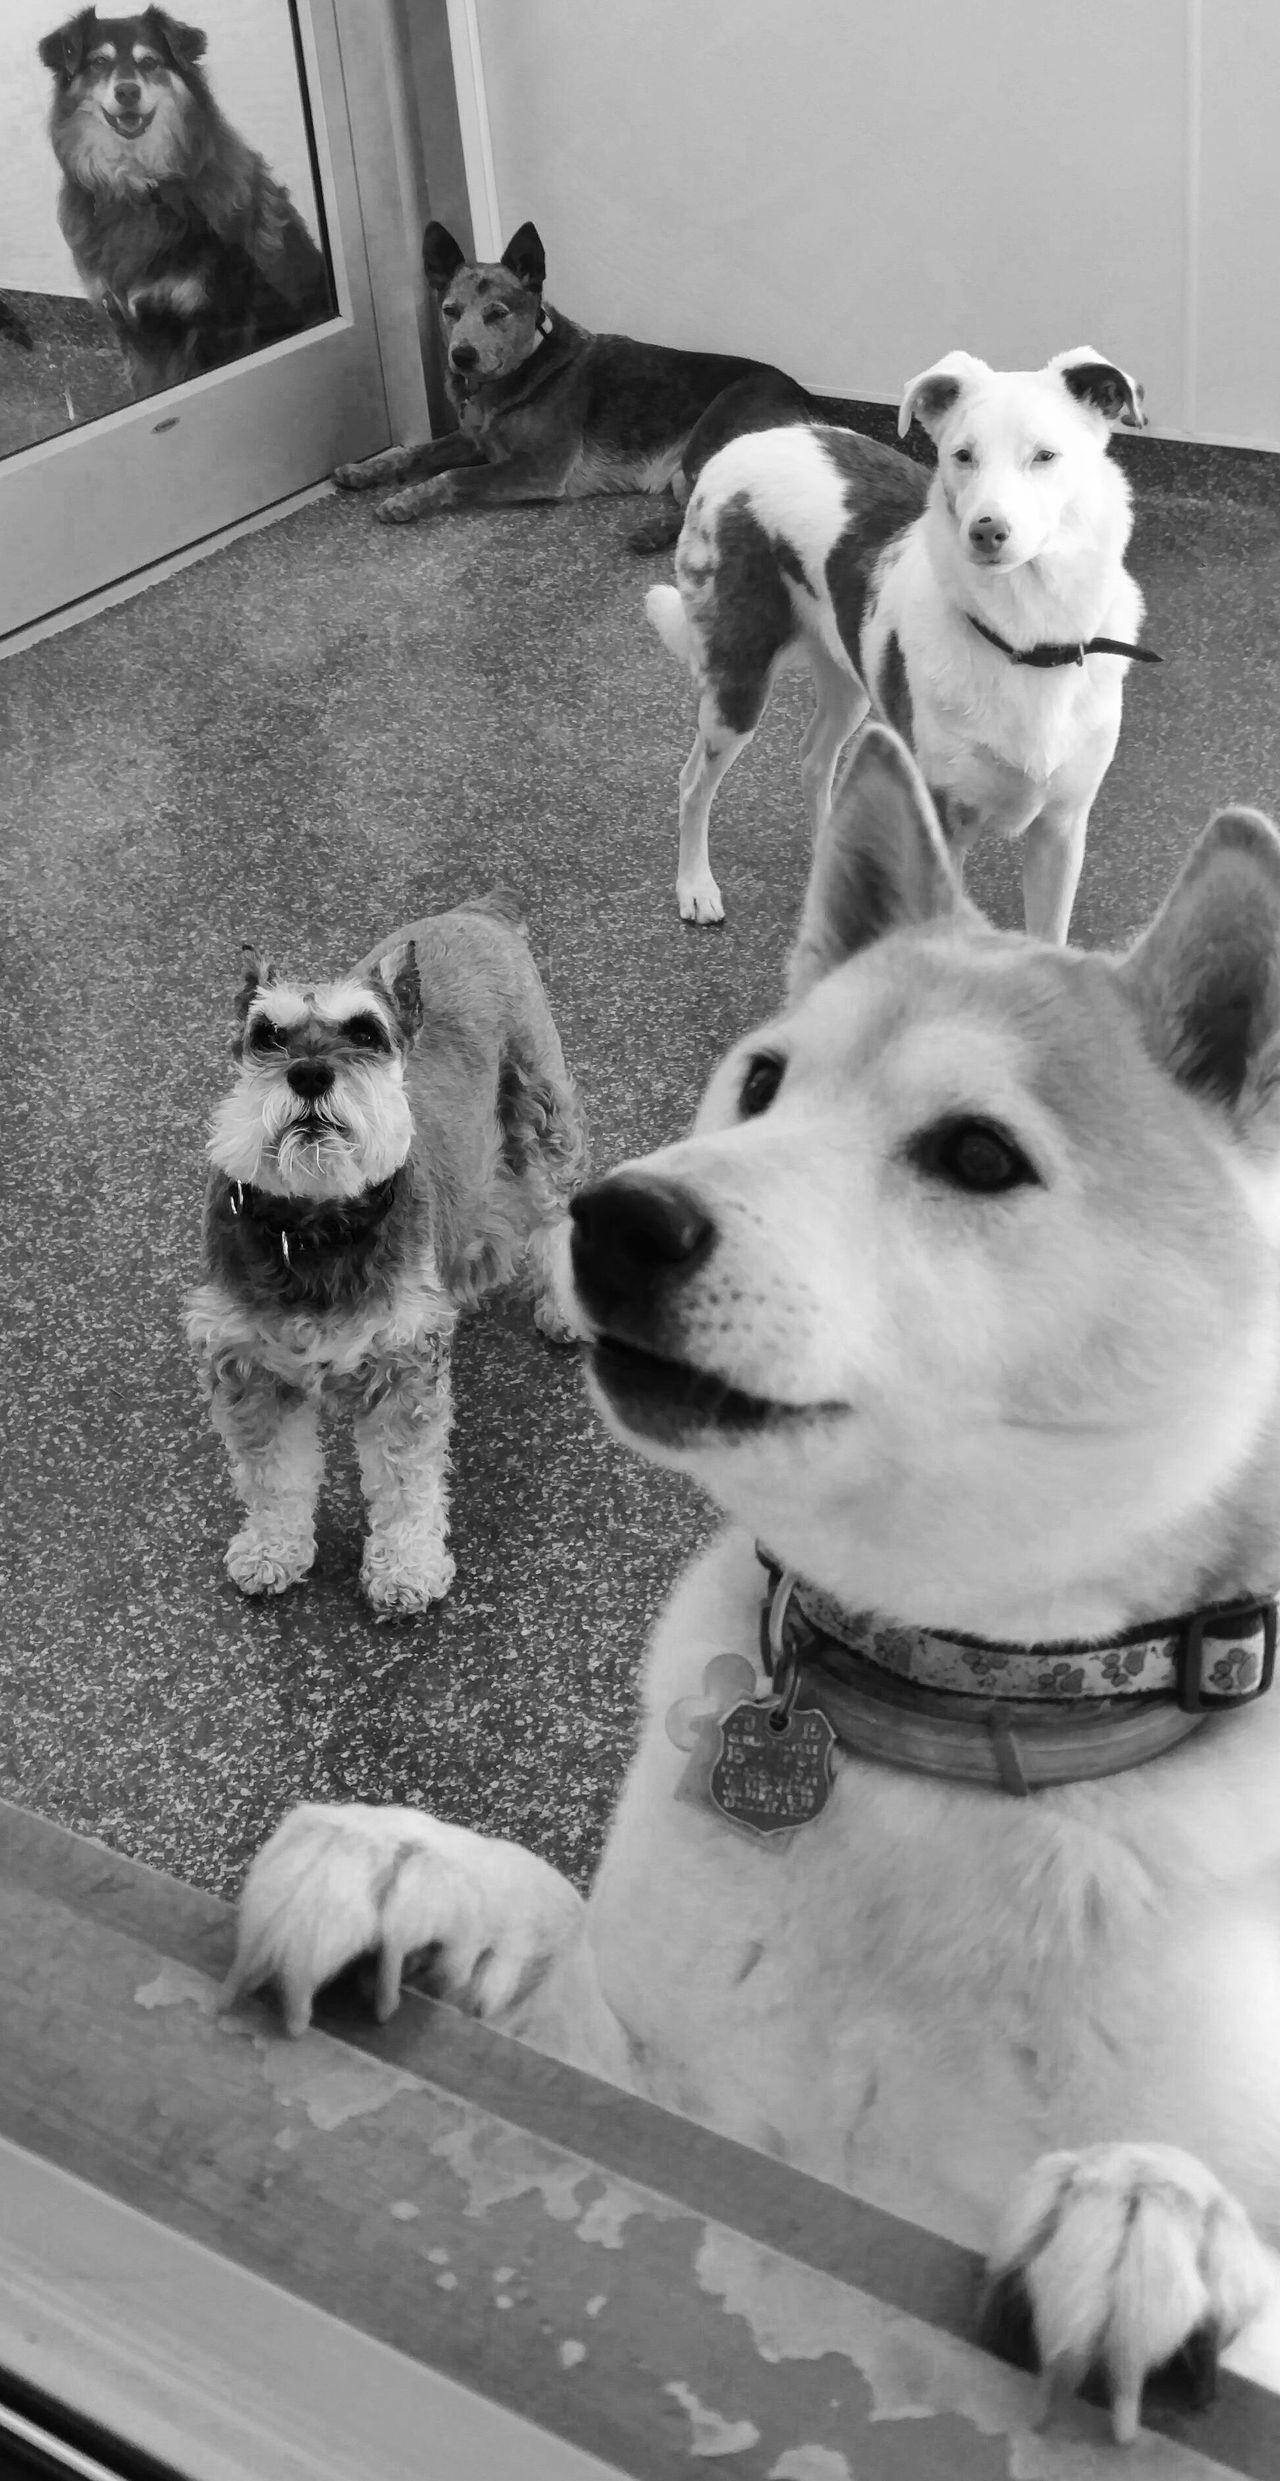 Doggie Day Camp! Animal Themes Domestic Animals Doggie Day Camp Dogs Having Fun Black & White Dog Breeds Close-up No People EyeEm Cell Phone Photography